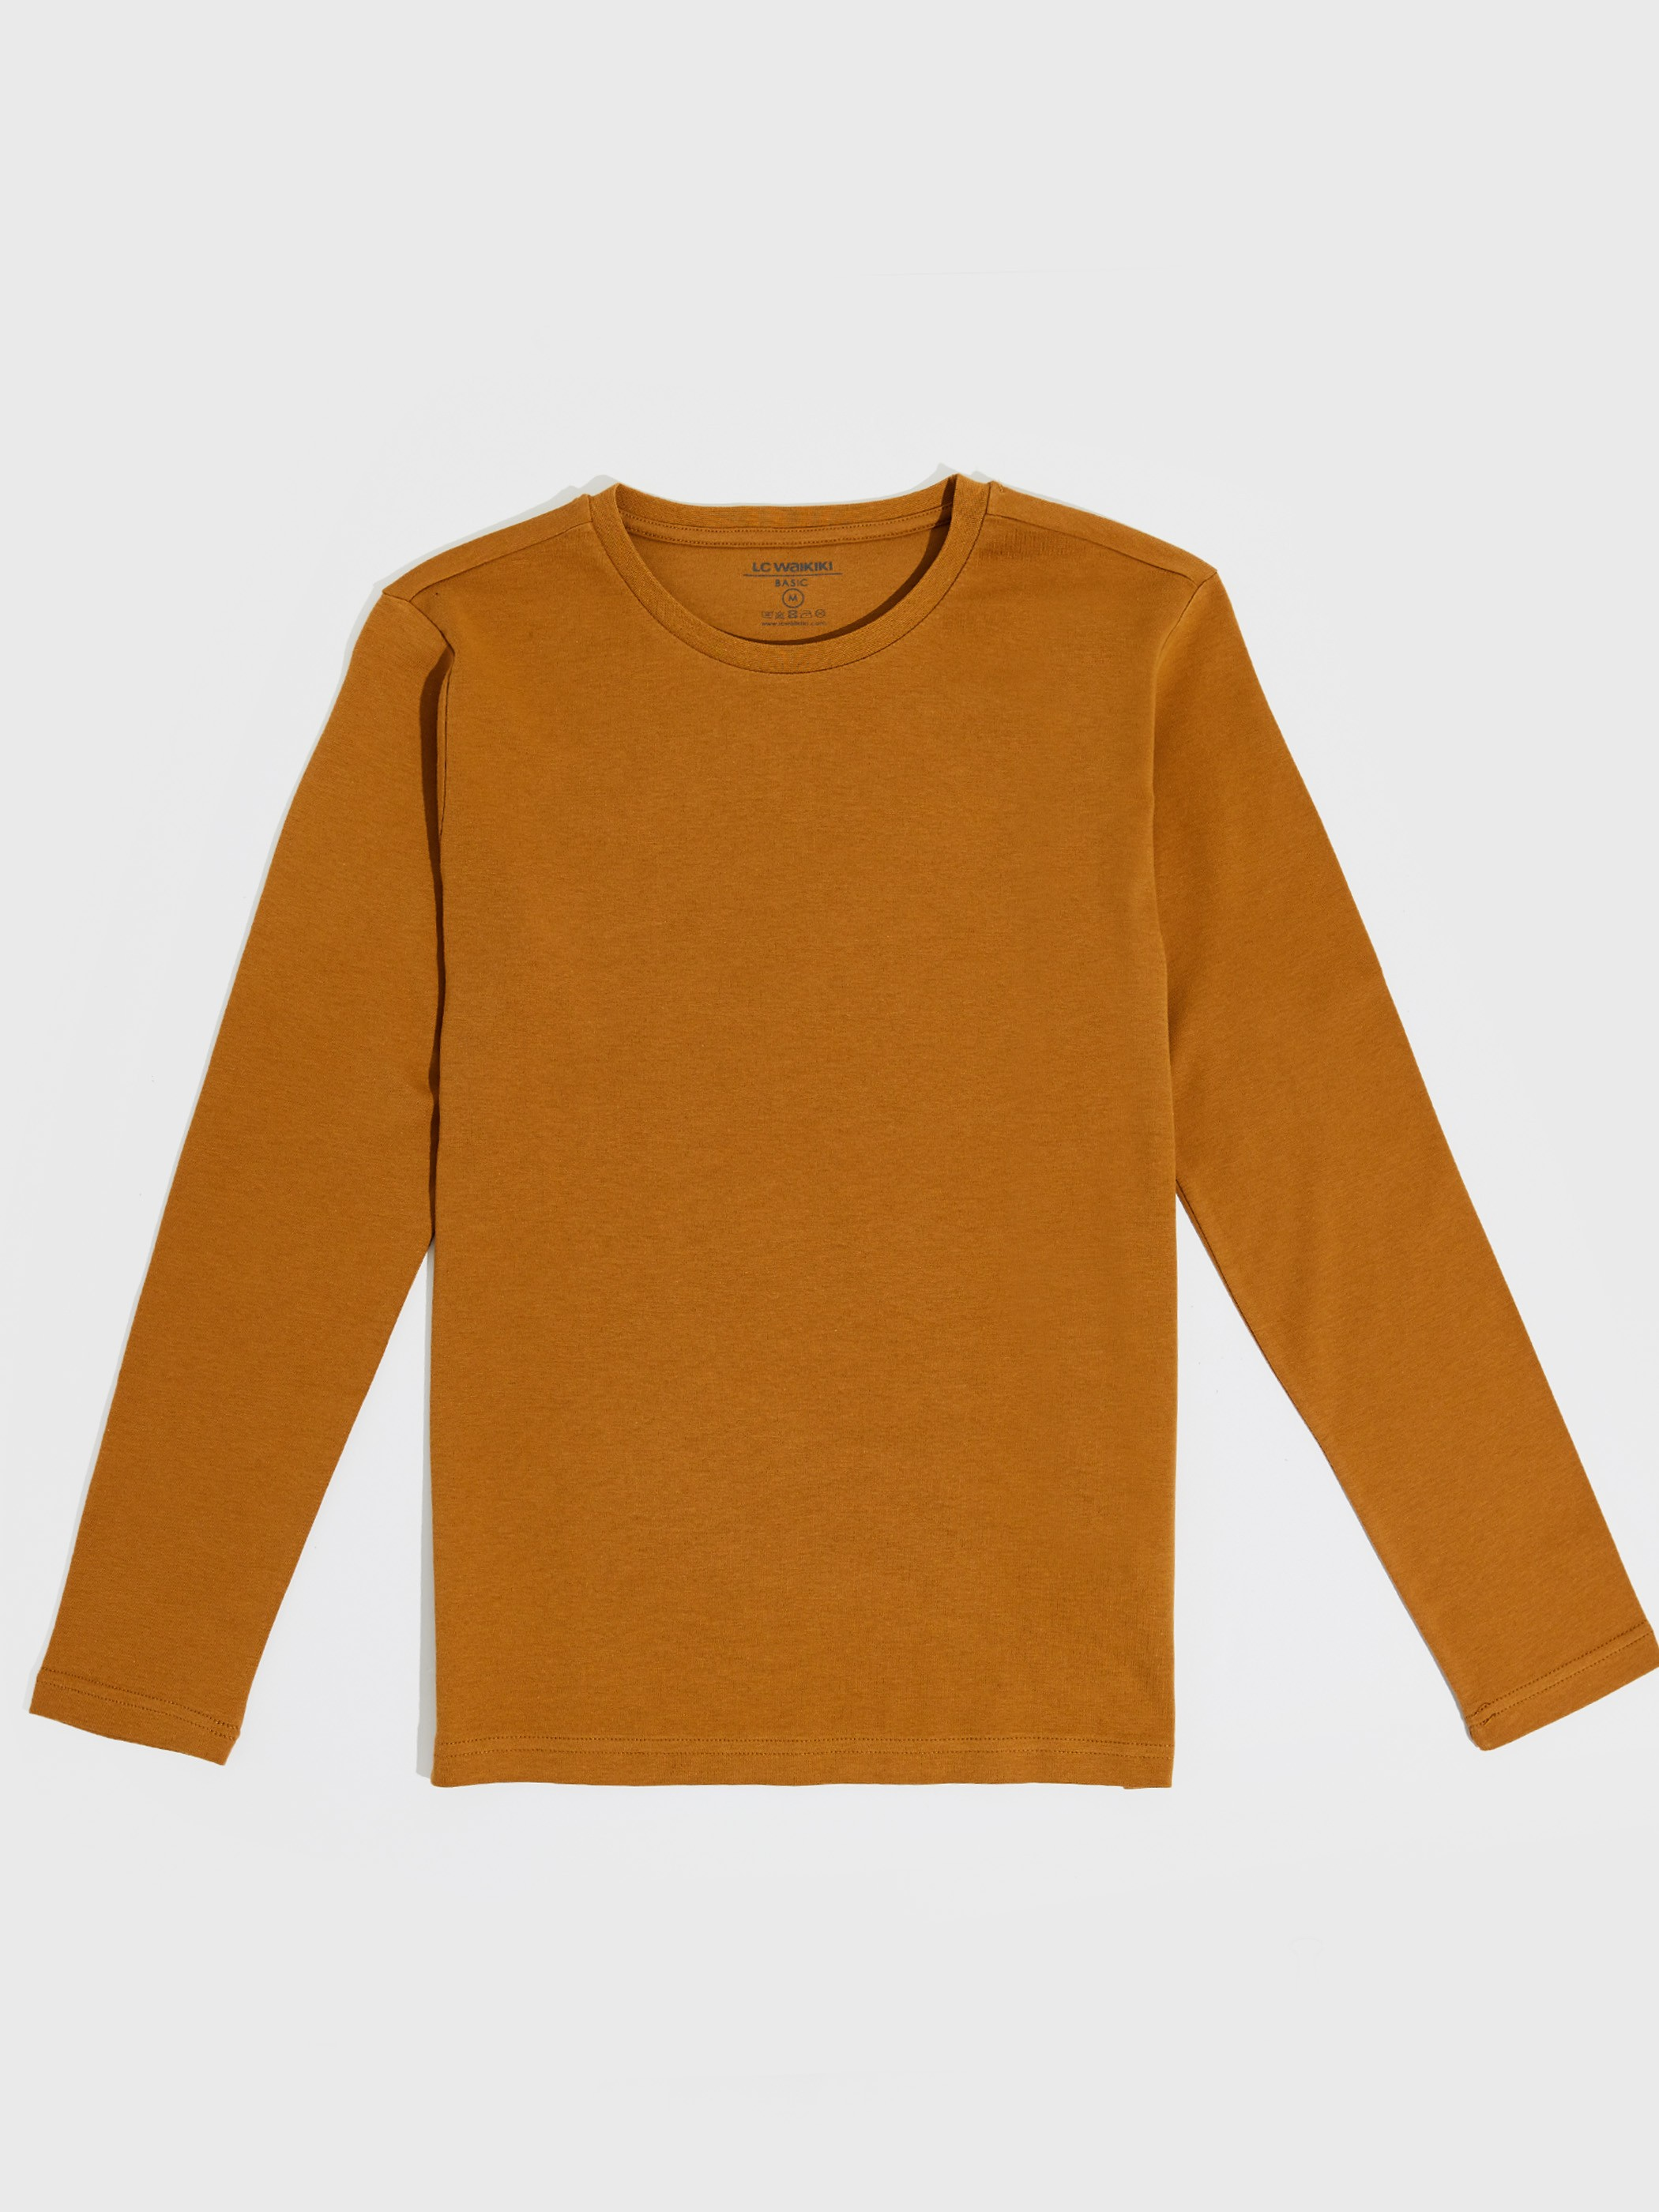 BROWN - Crew Neck Basic Long Sleeve T-Shirt - 0SR611Z8